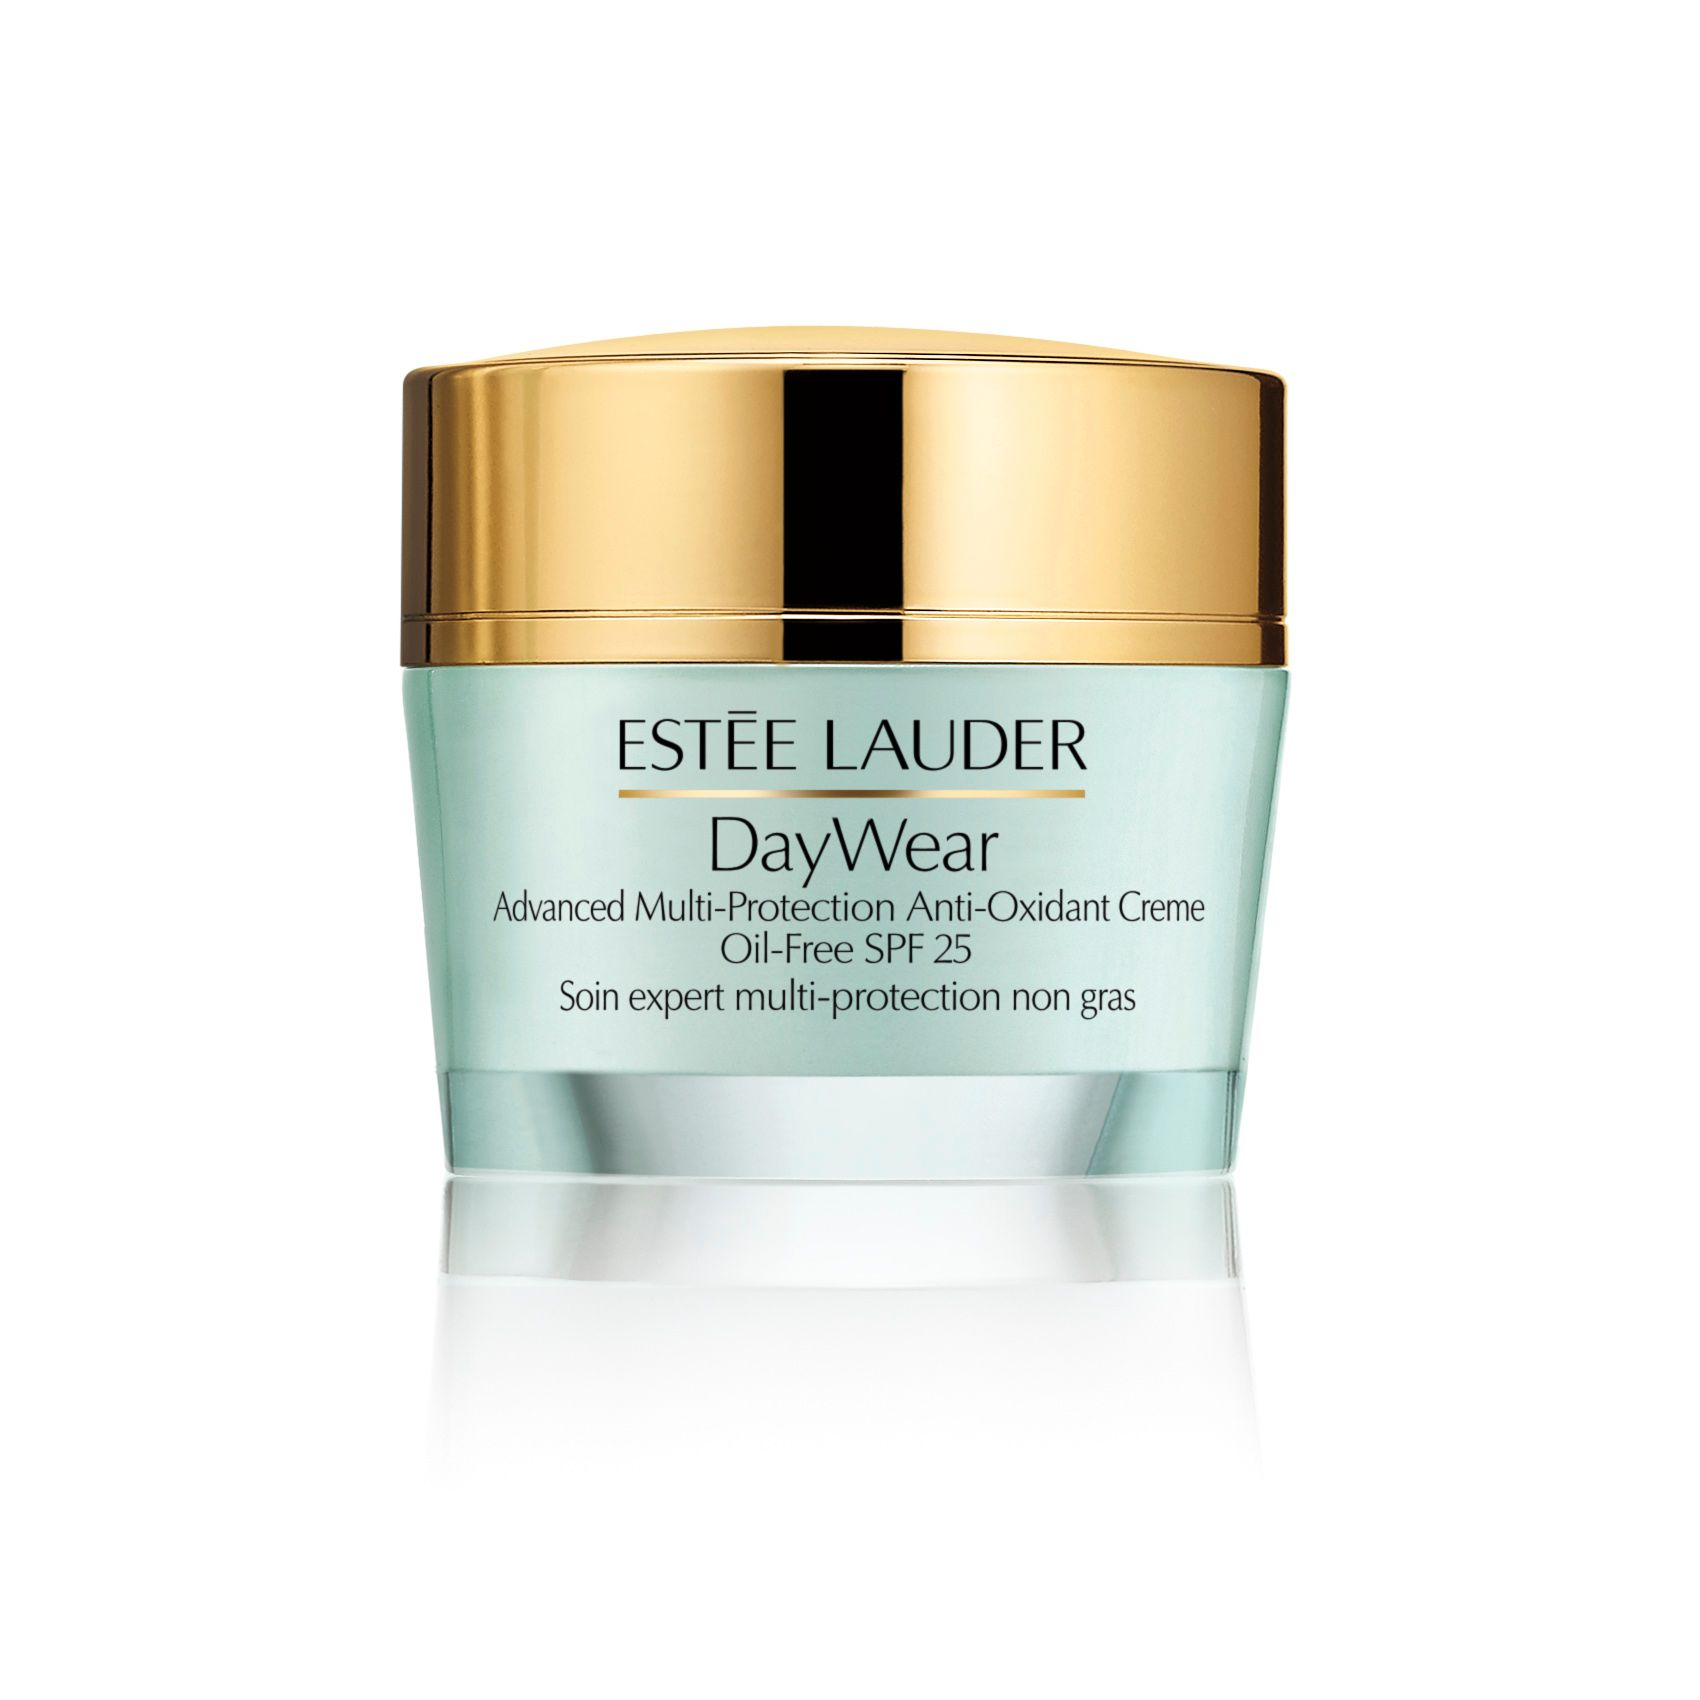 DayWear Advanced Anti-Oxidant Oil Free Creme